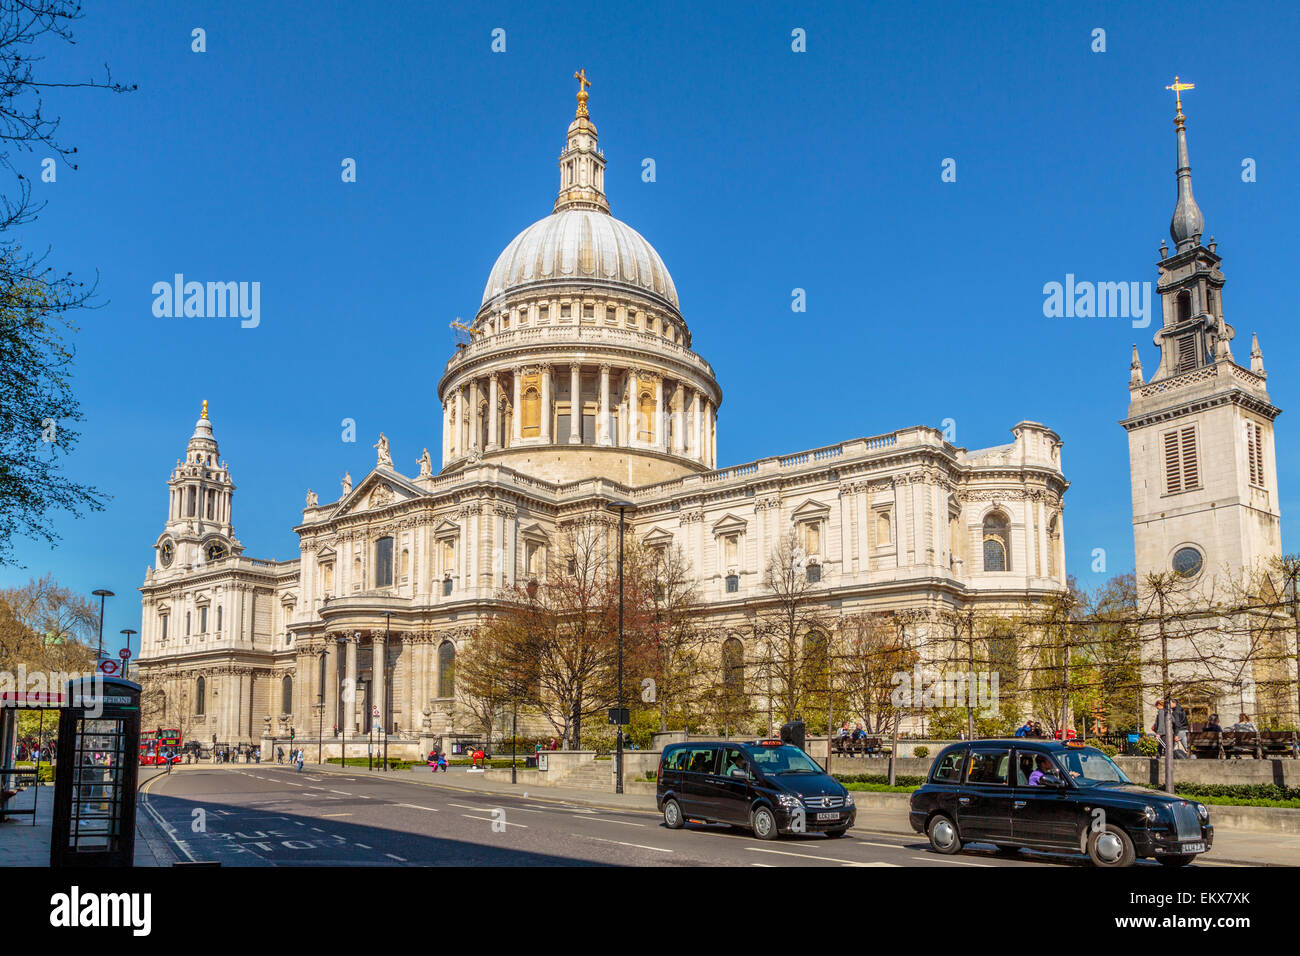 St Paul's Cathedral on a clear Spring day in London England UK - Stock Image